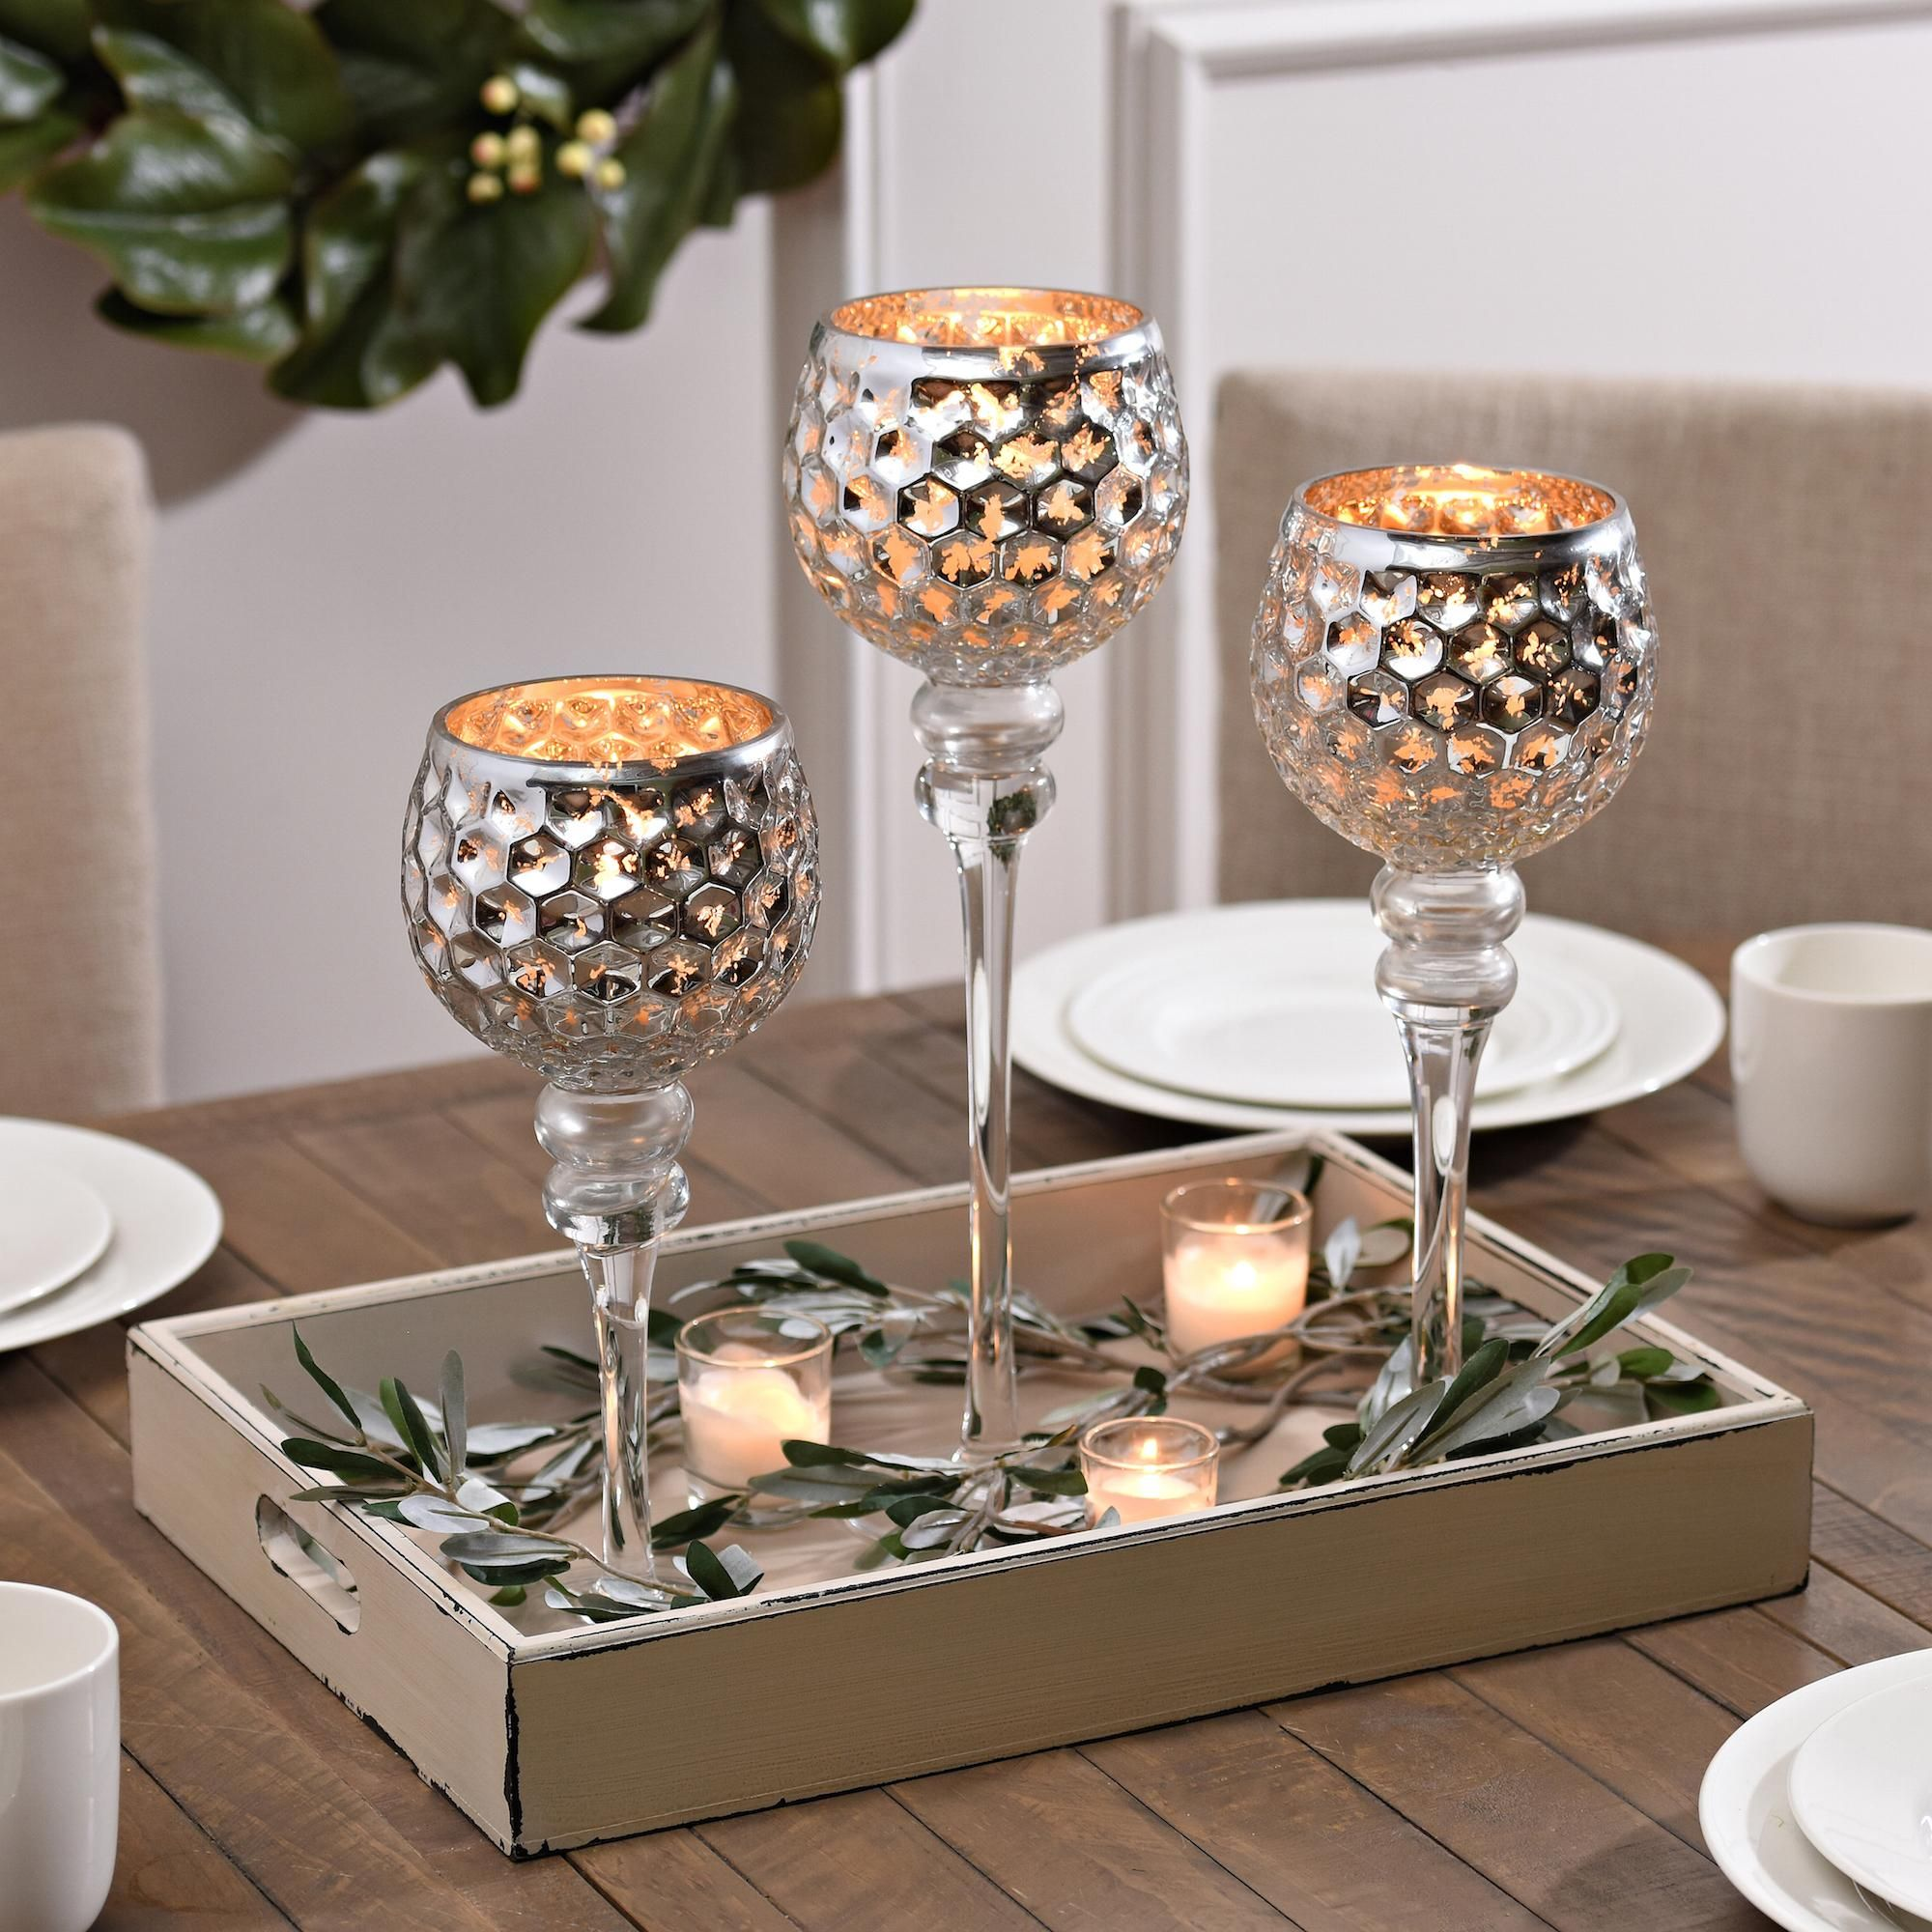 Kirkland S Set Of Silver Honeycomb Charisma Candle Holders Are Beautiful As Centerpieces Decorate Your Dining